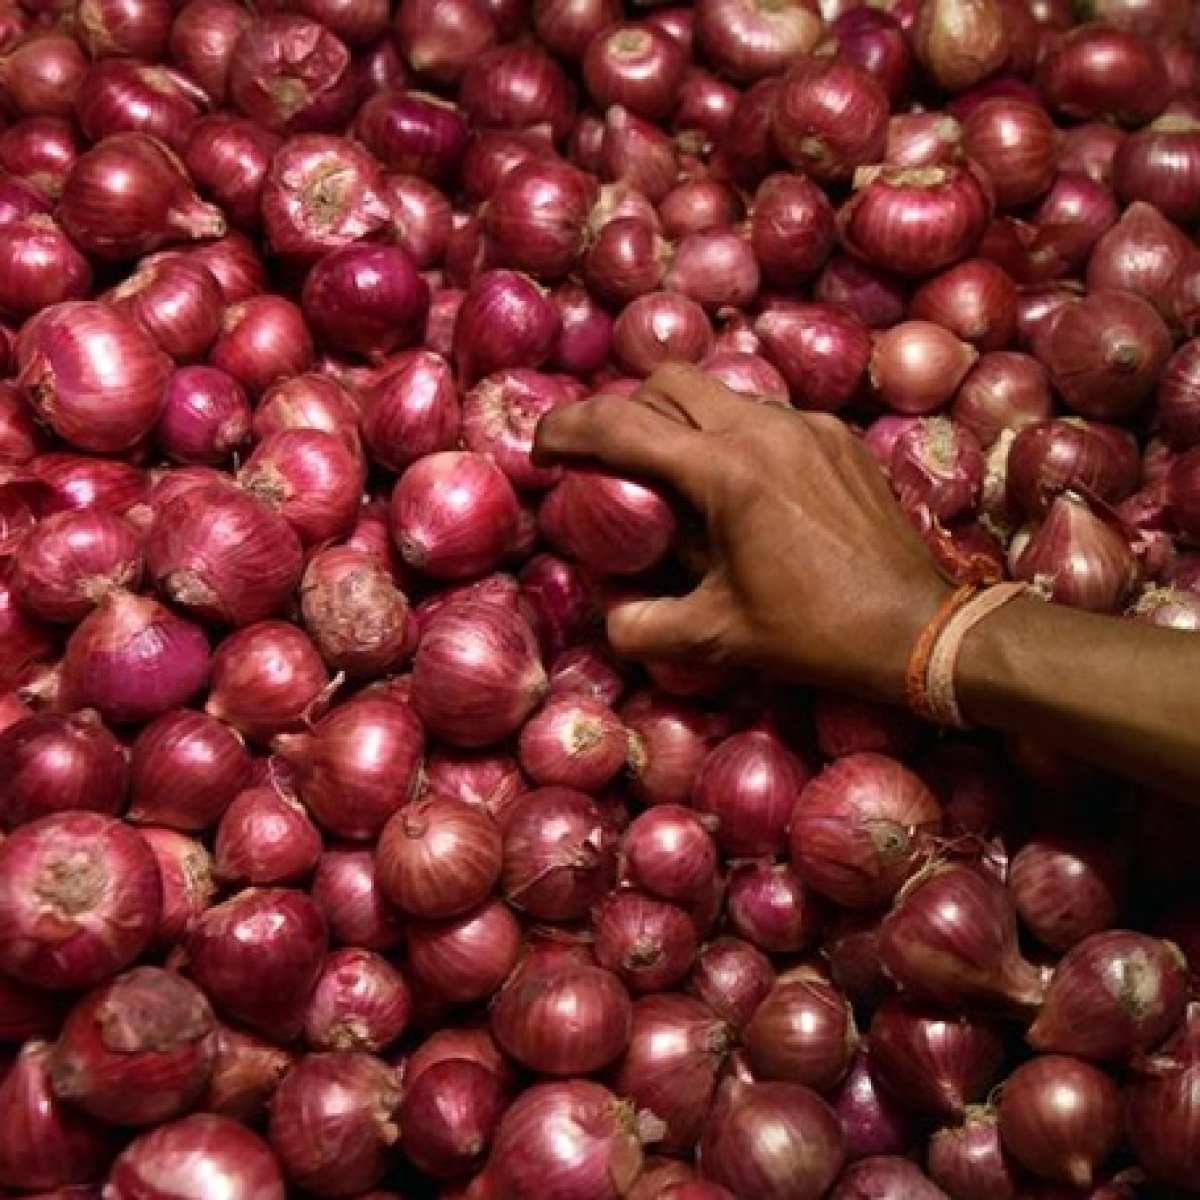 Onion prices remain high across major cities; Avg rate Rs 100/kg, highest Rs 165/kg at Panaji